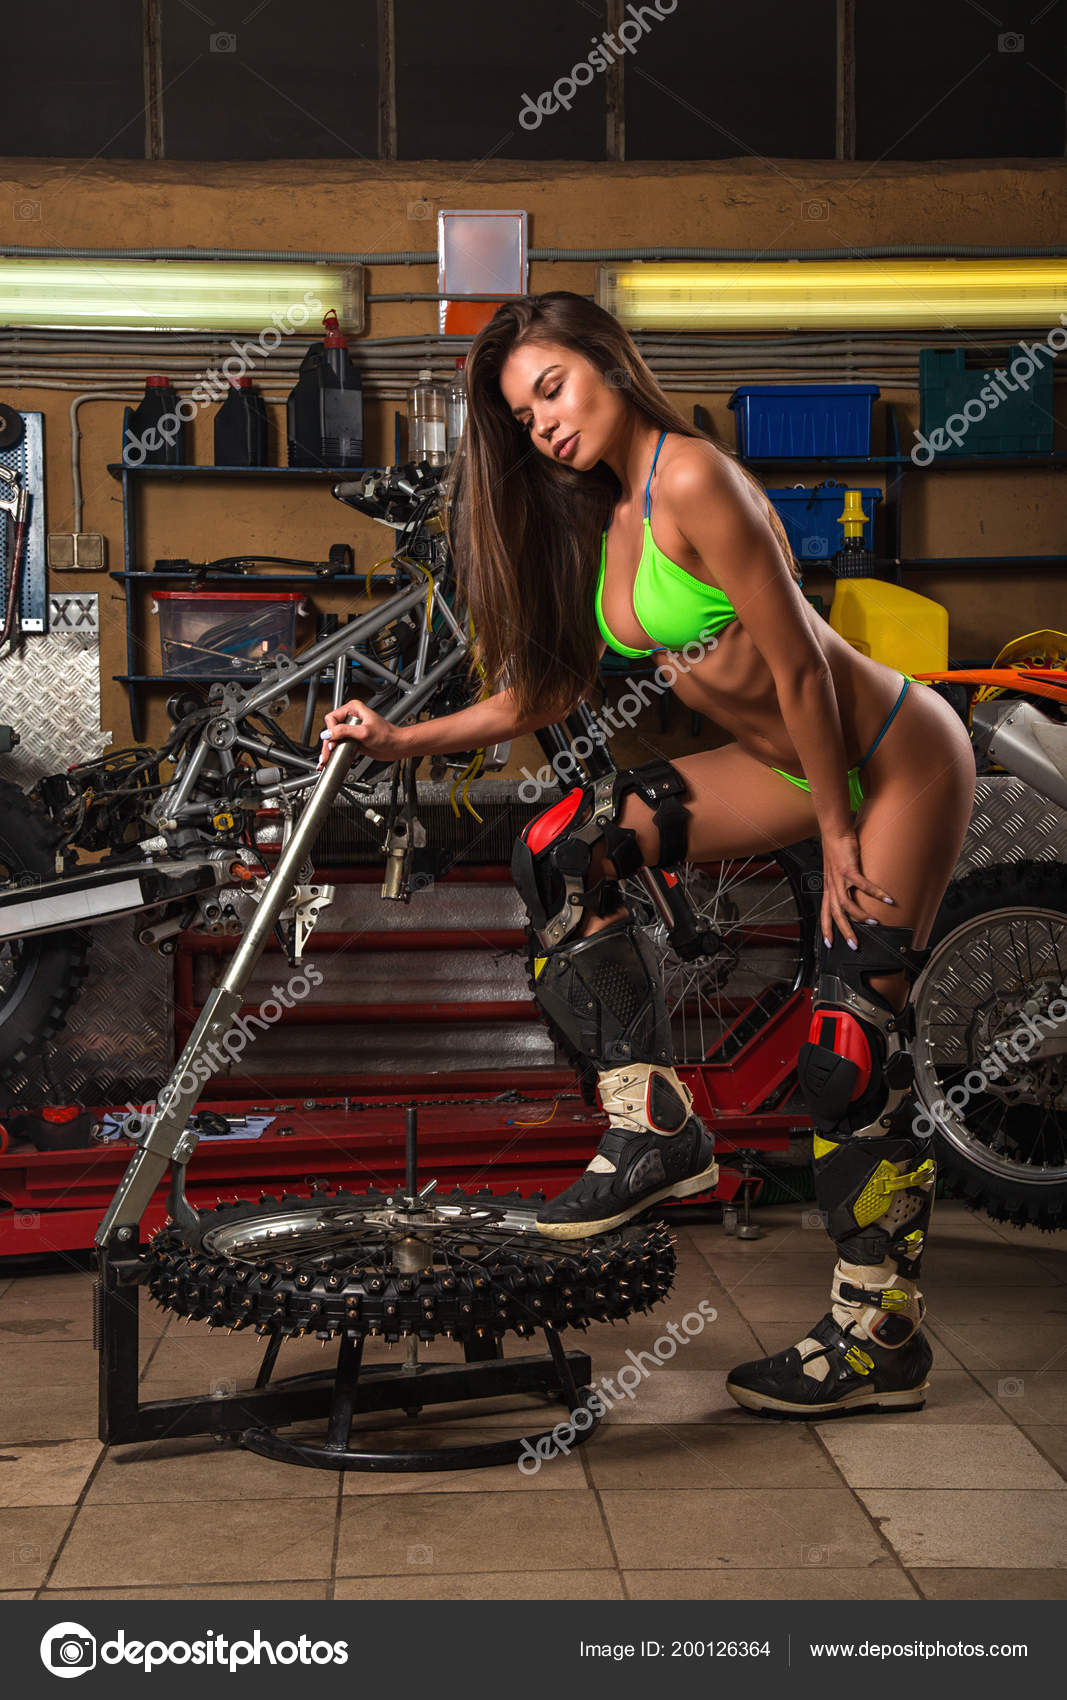 Girl garage motorcycle working studded tires u2014 stock photo